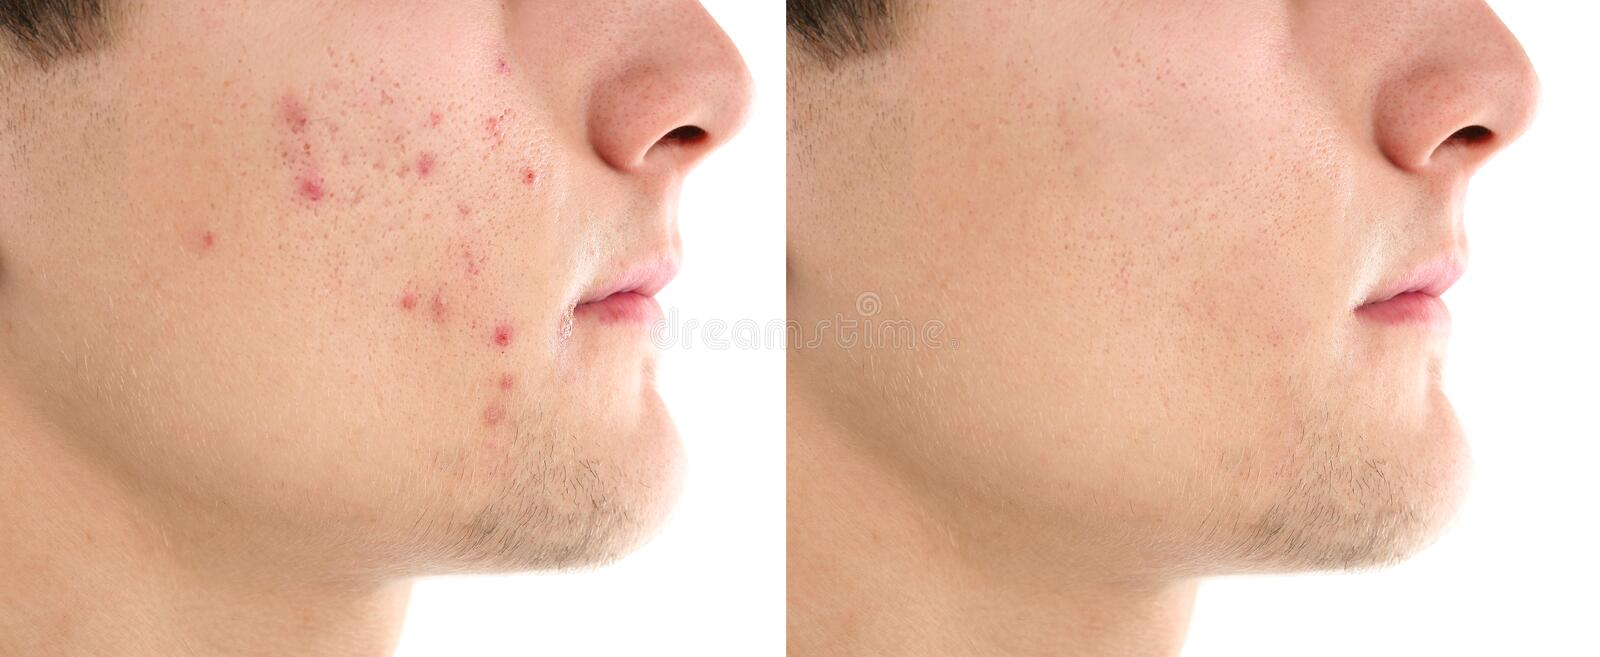 Teenager before and after acne treatment. On white background, closeup. Skin care concept royalty free stock photography